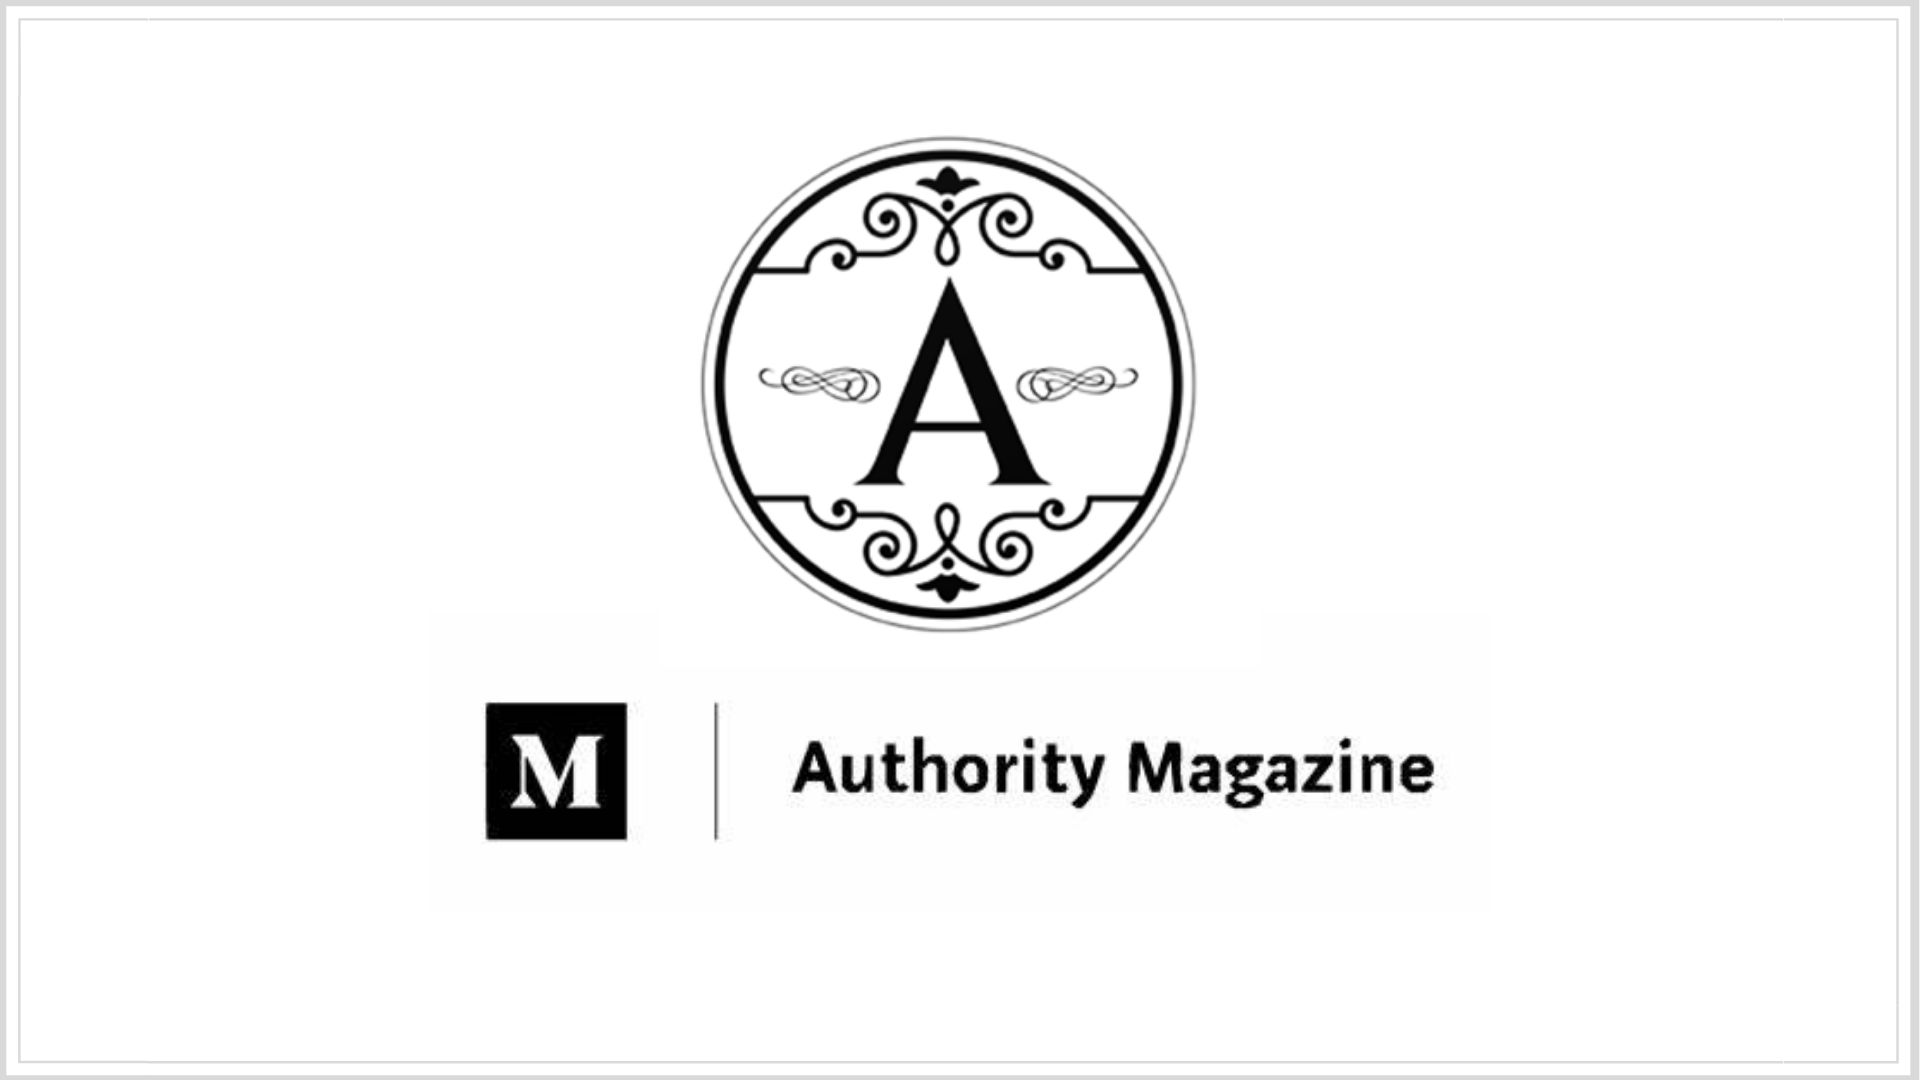 Authority Magazine | Chloe Capital